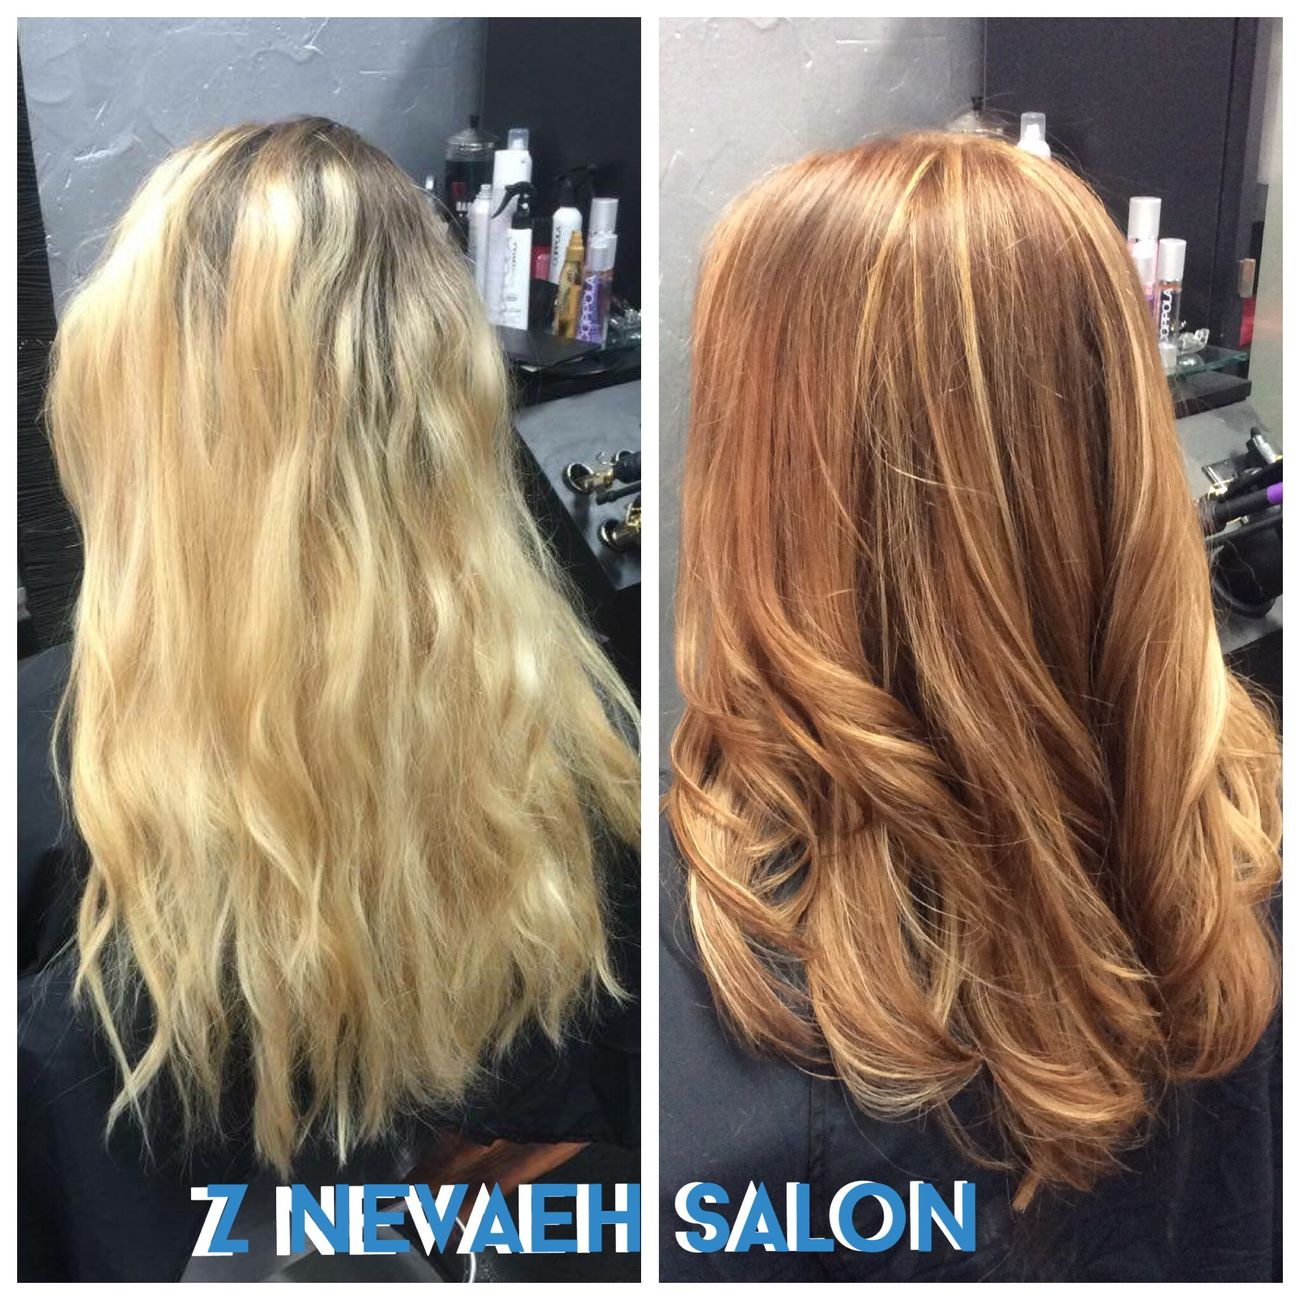 New Color Transformation @znevaehsalon @lorealprous Check This Out Long Hair Lorealprofessionnelsalon Pro Fiber Color Specialist Haircolor Knoxvillesalon Teamznevaeh @znevaehsalon Tecni.art Shinyhair Z Nevaeh Salon L'Oreal Professionnel Hairtrends Salonlife Fashion #style #stylish #love #TagsForLikes #me #cute #photooftheday #nails #hair #beauty #beautiful #instagood #instafashion # Eye4photography # Photooftheday Hair Haircut Hairstyle Salon Highligting And Contouring